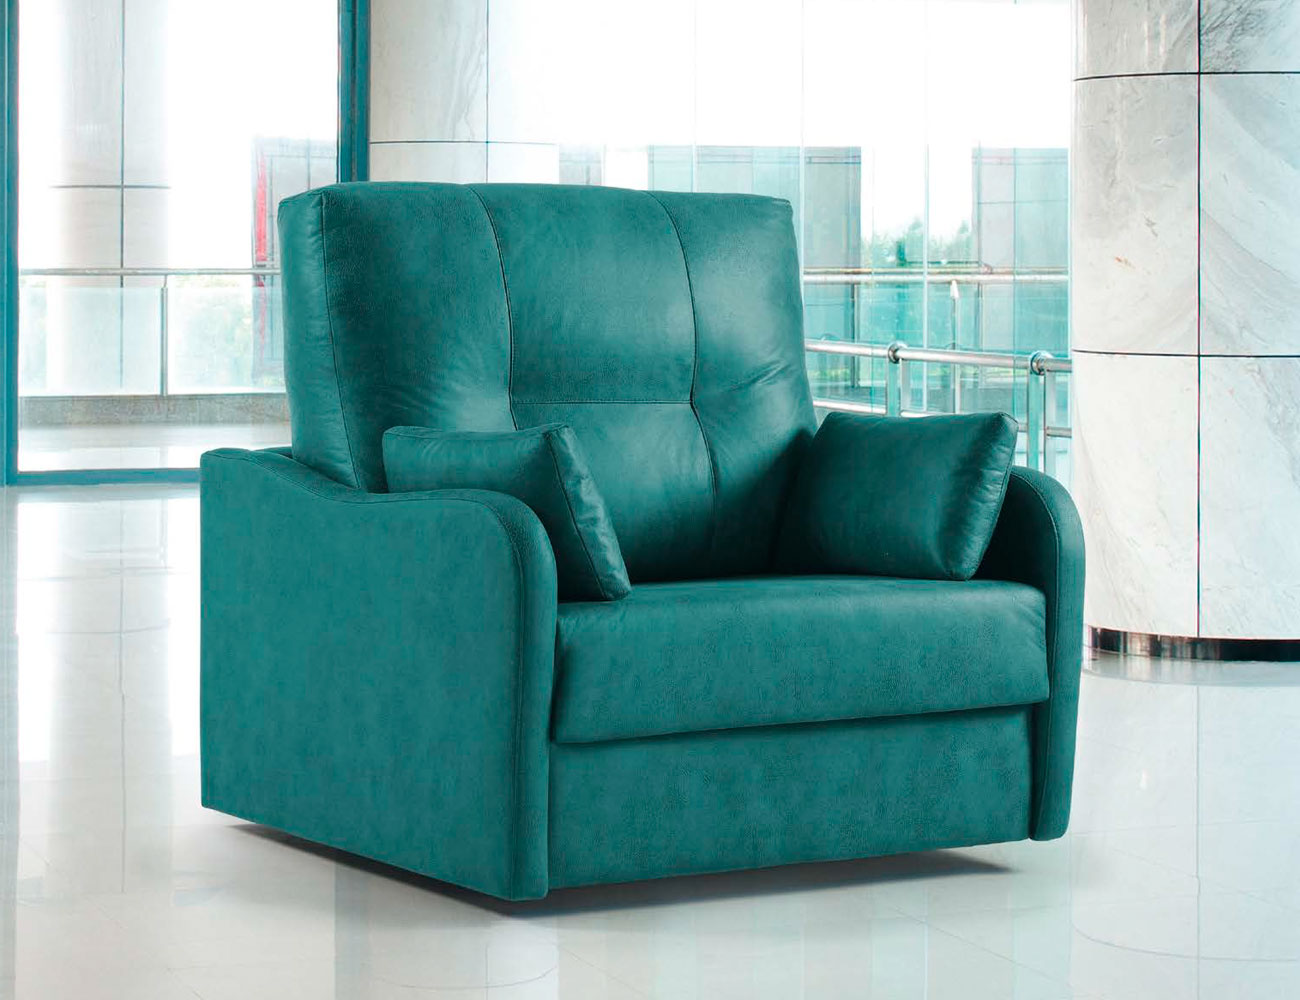 Sillon cama apertura italiano mini